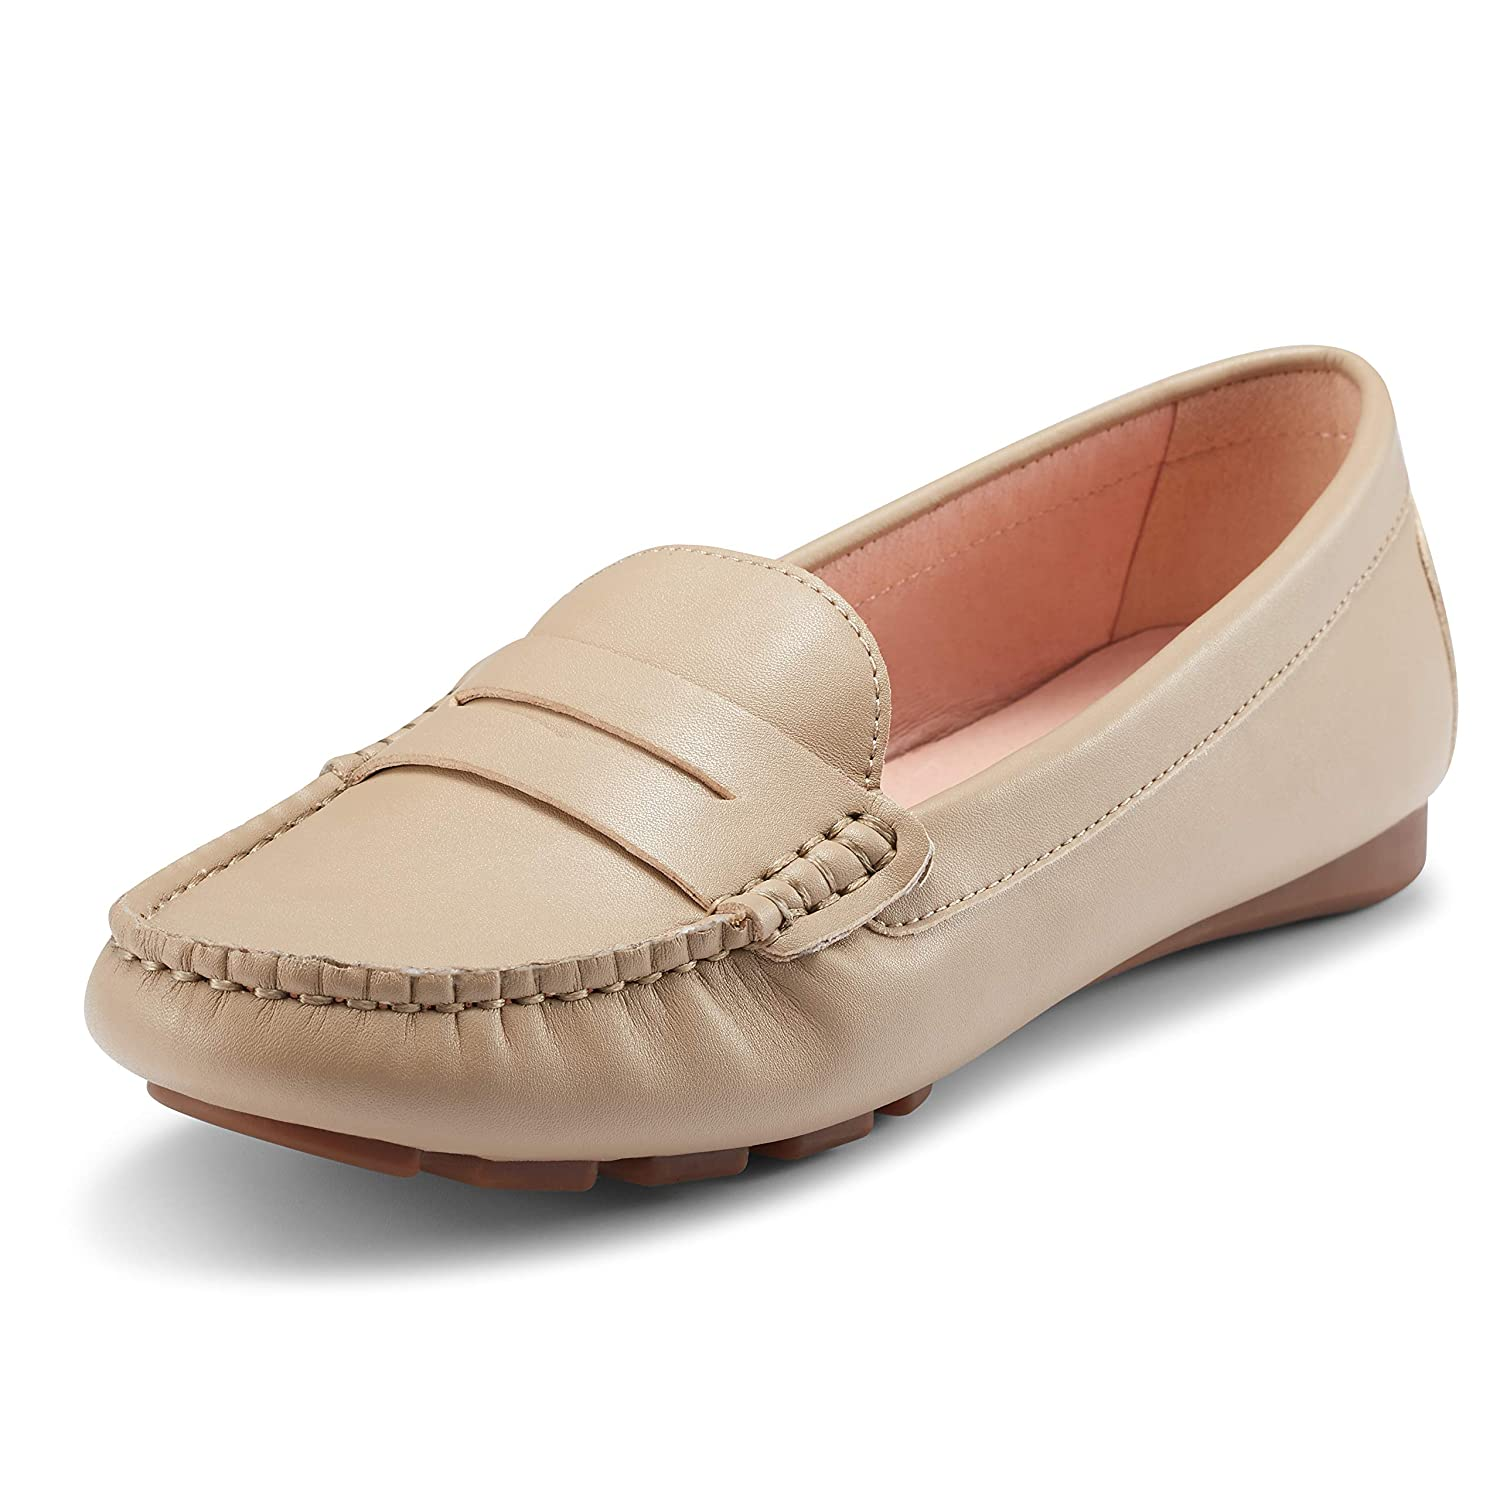 Jenn Flat Loafer Moccasin Low Ladies 8 Wedge Casual Shoe Ardor Work Size 3 Women's Heel Shoes dBWxCoer